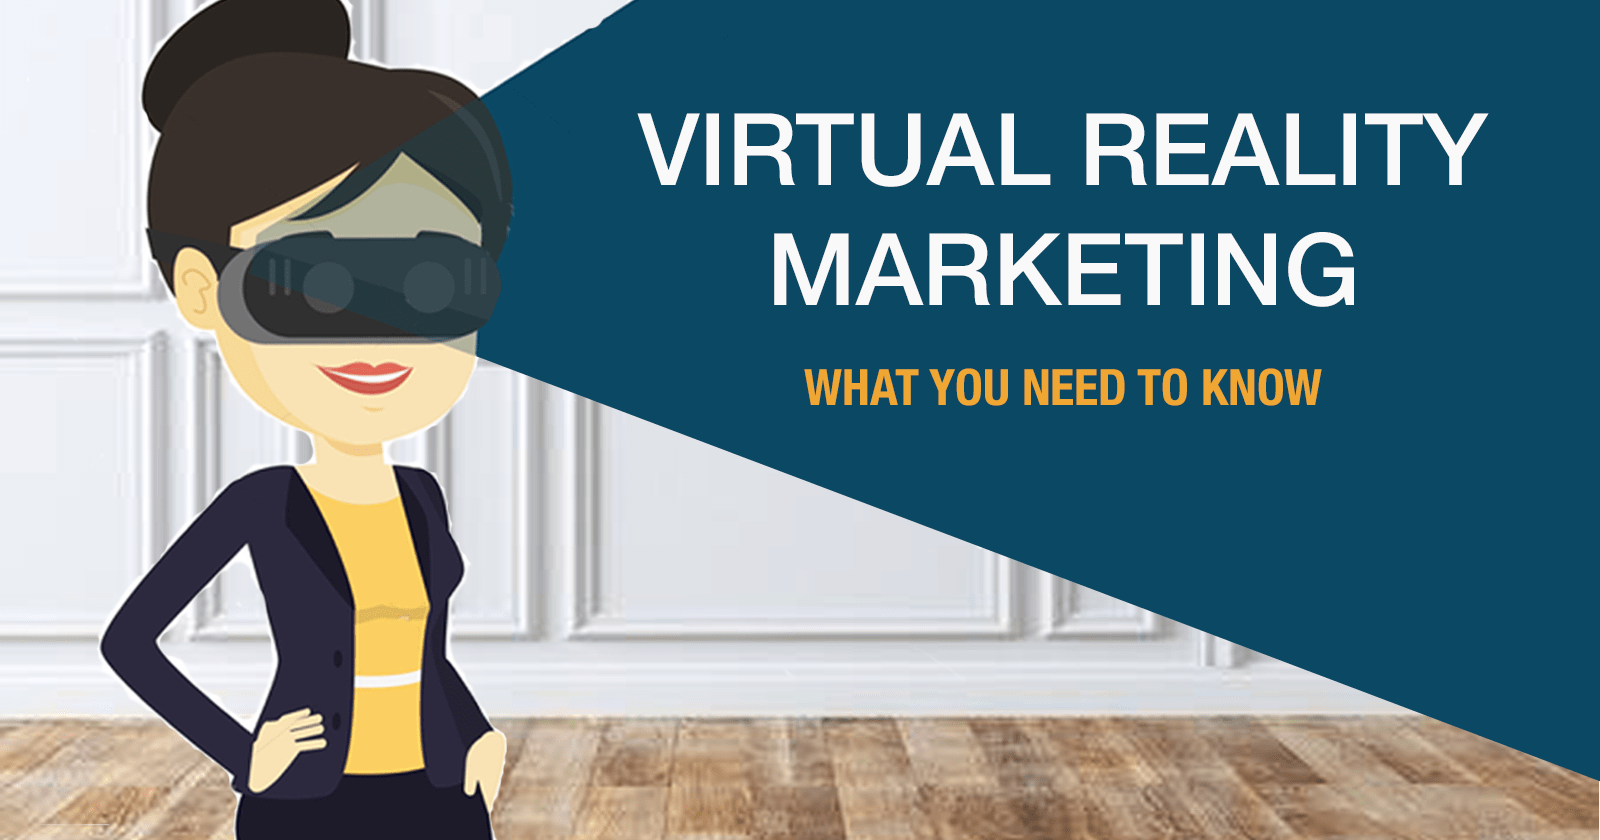 Everything You Need to Know About Virtual Reality Marketing by @jesstiles